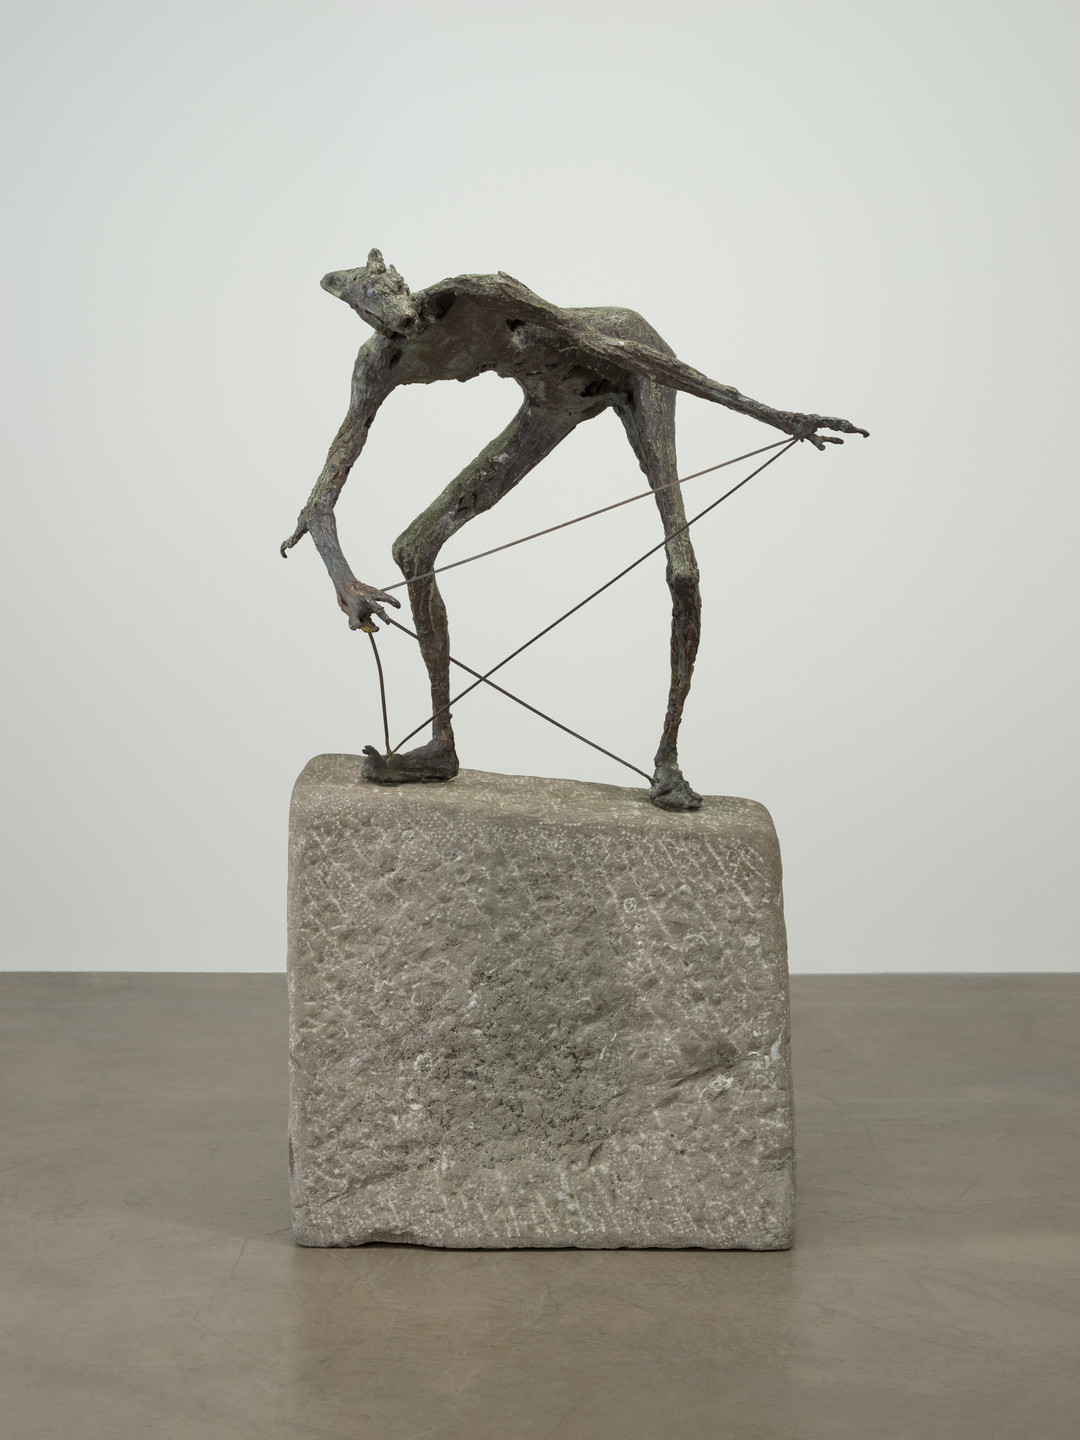 Germaine Richier. The Devil with Claws. 1952